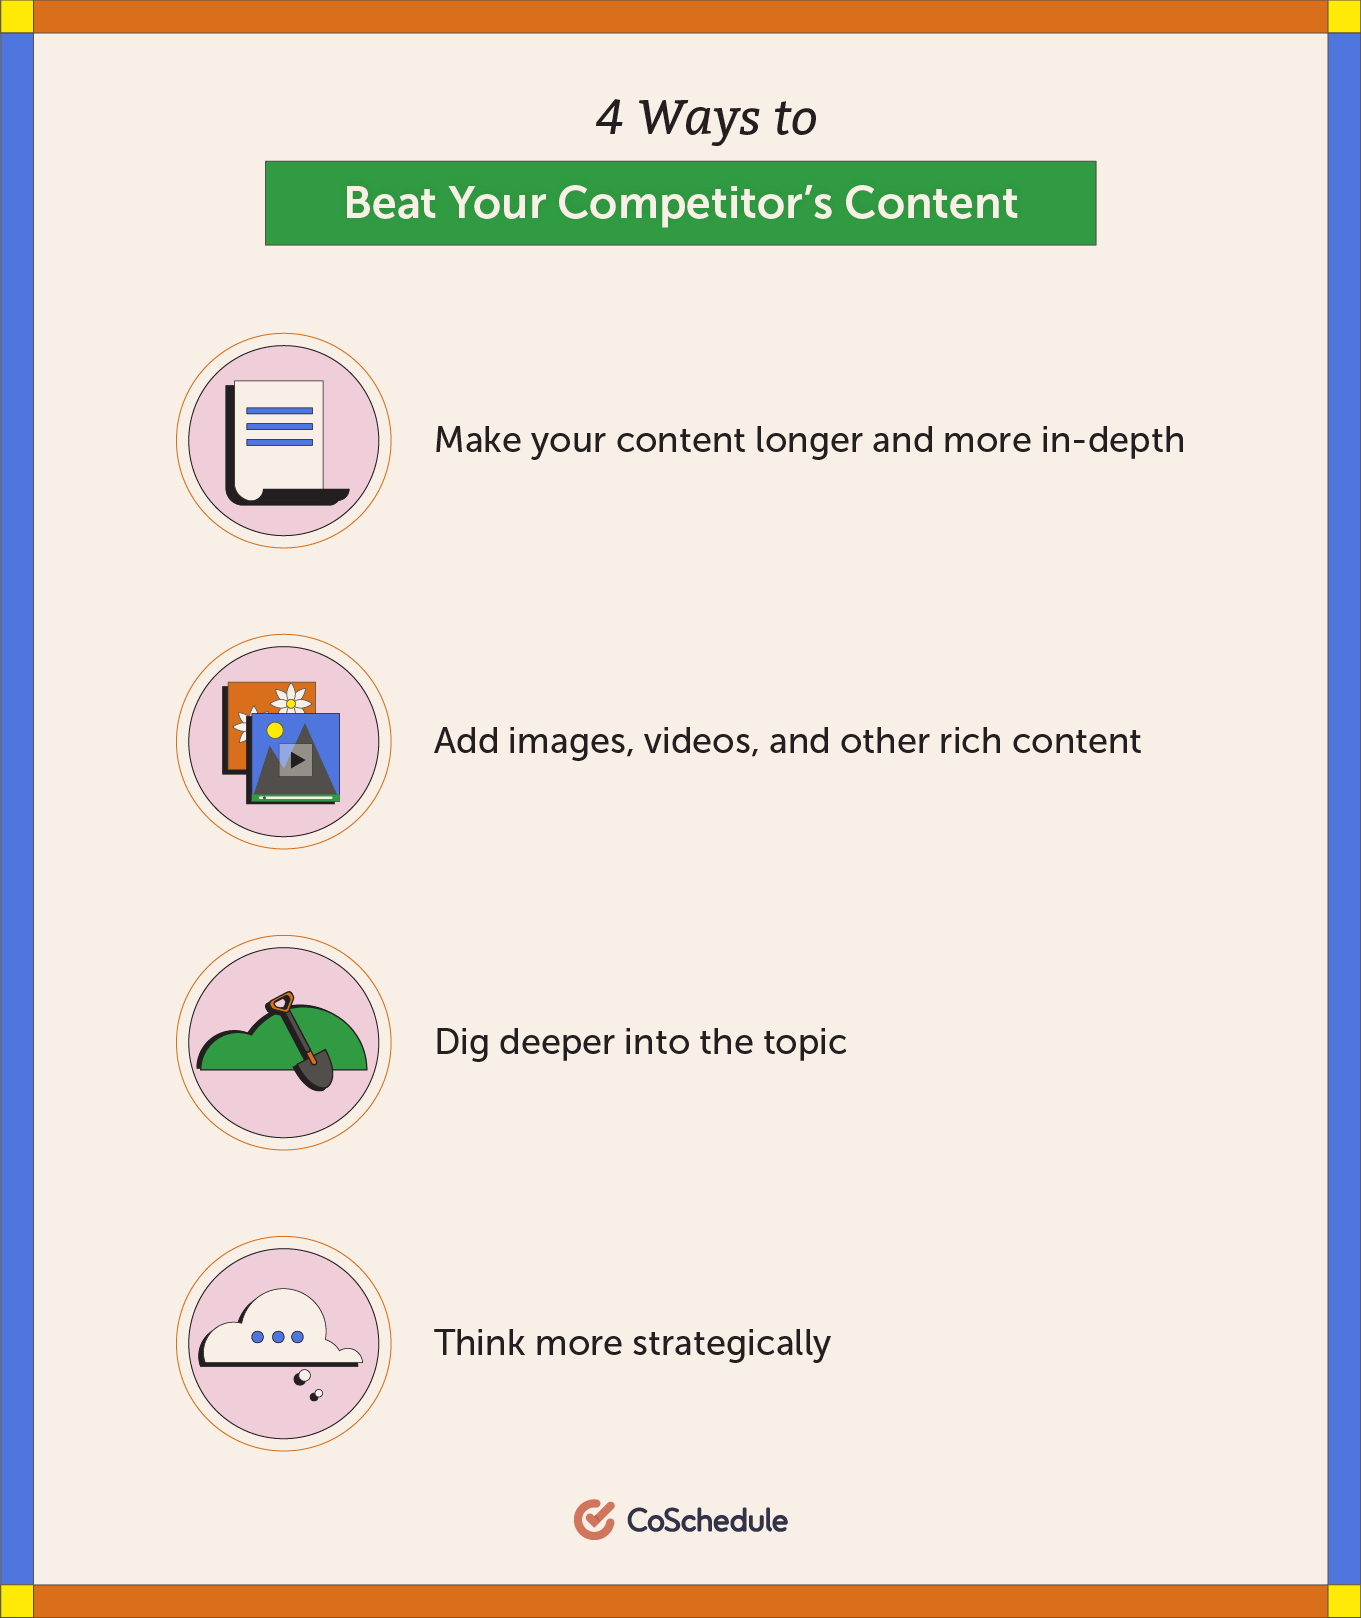 4 ways to compete with your competitor's content